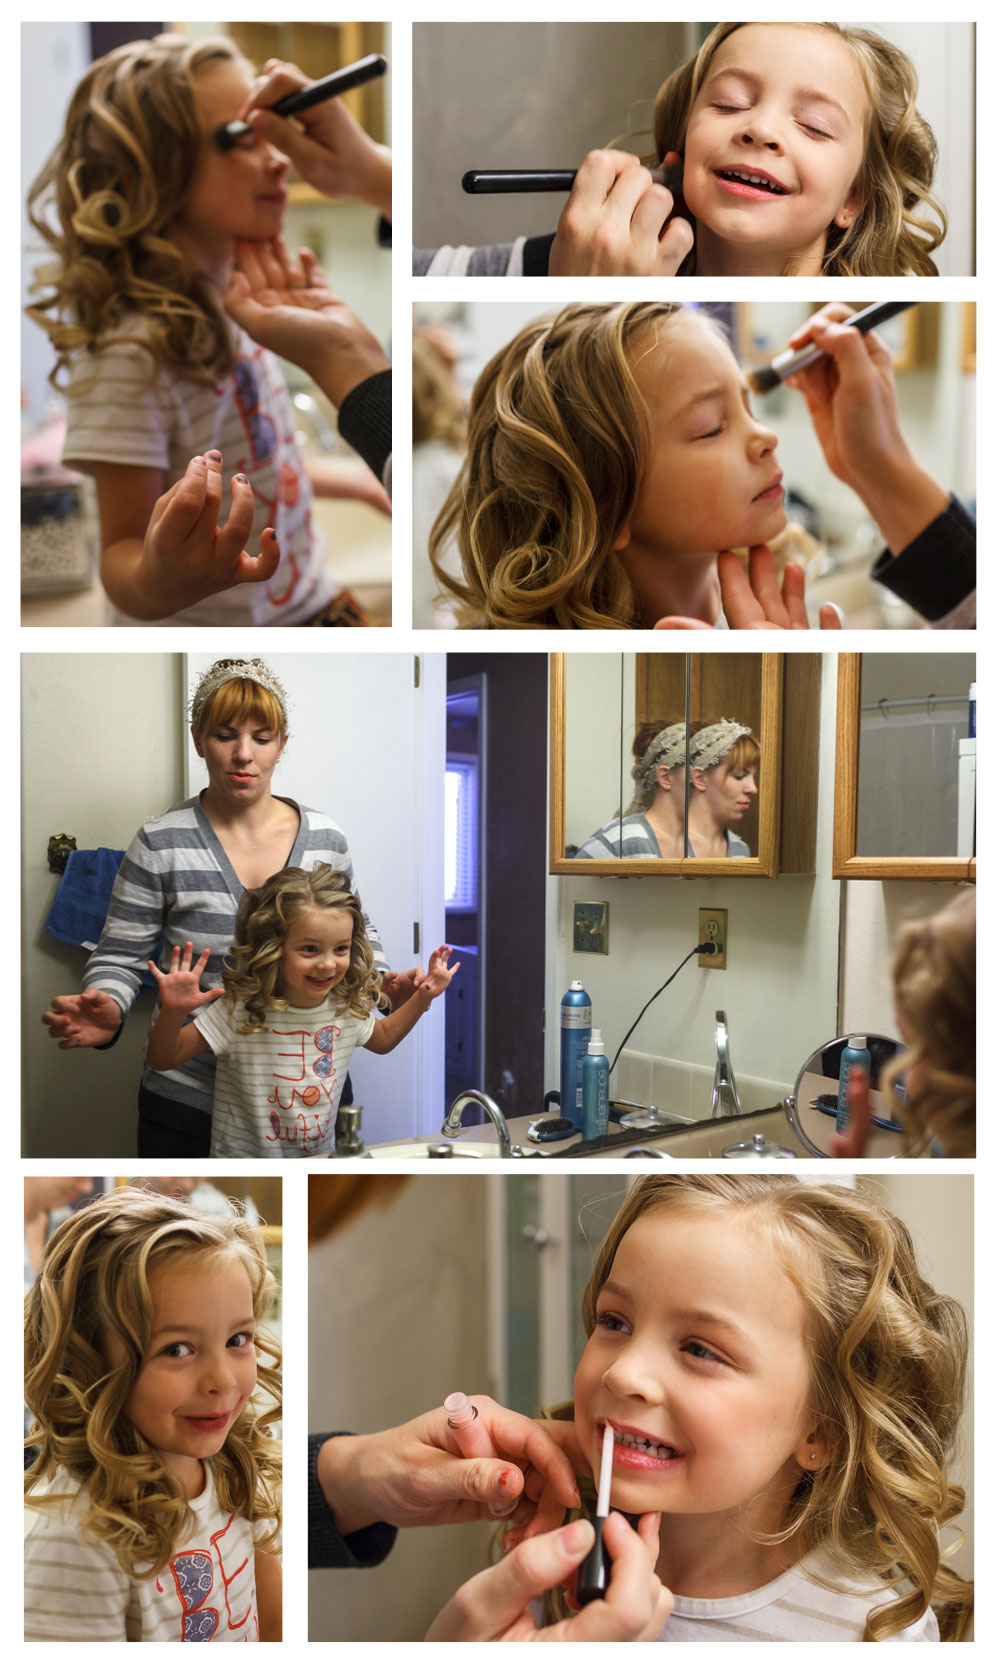 She loves to get dolled up!